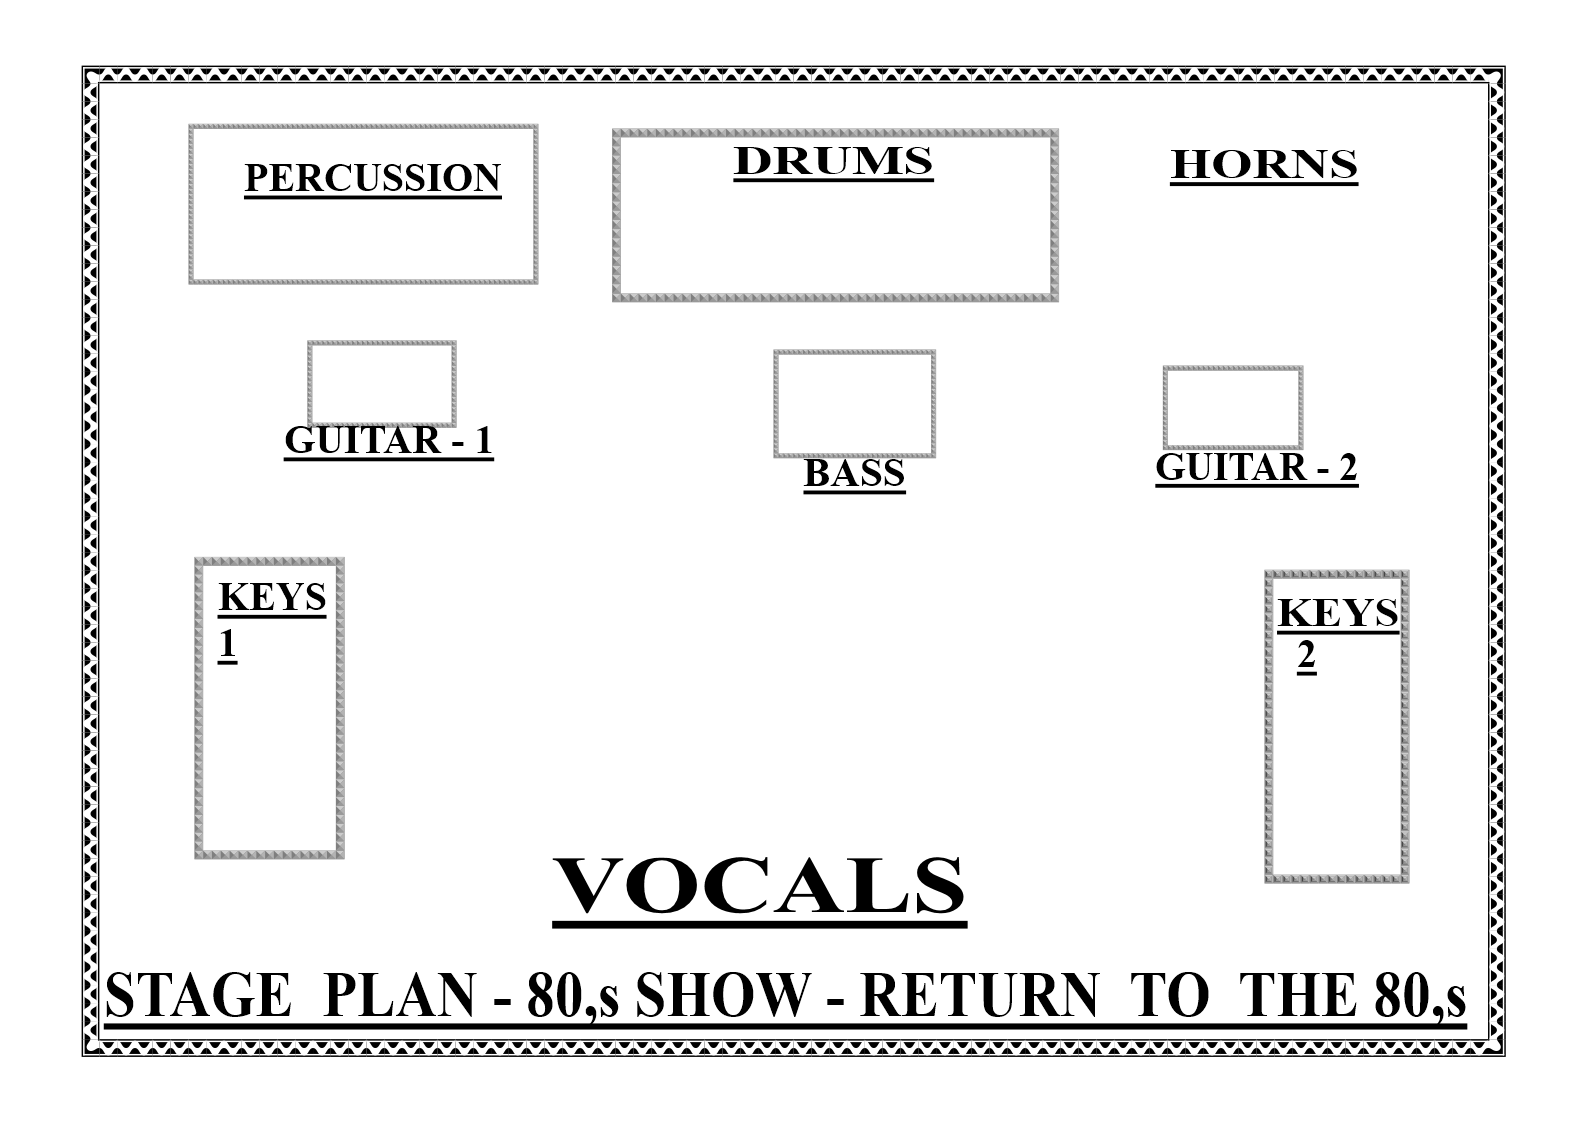 Drawing1.png80,s stage plan